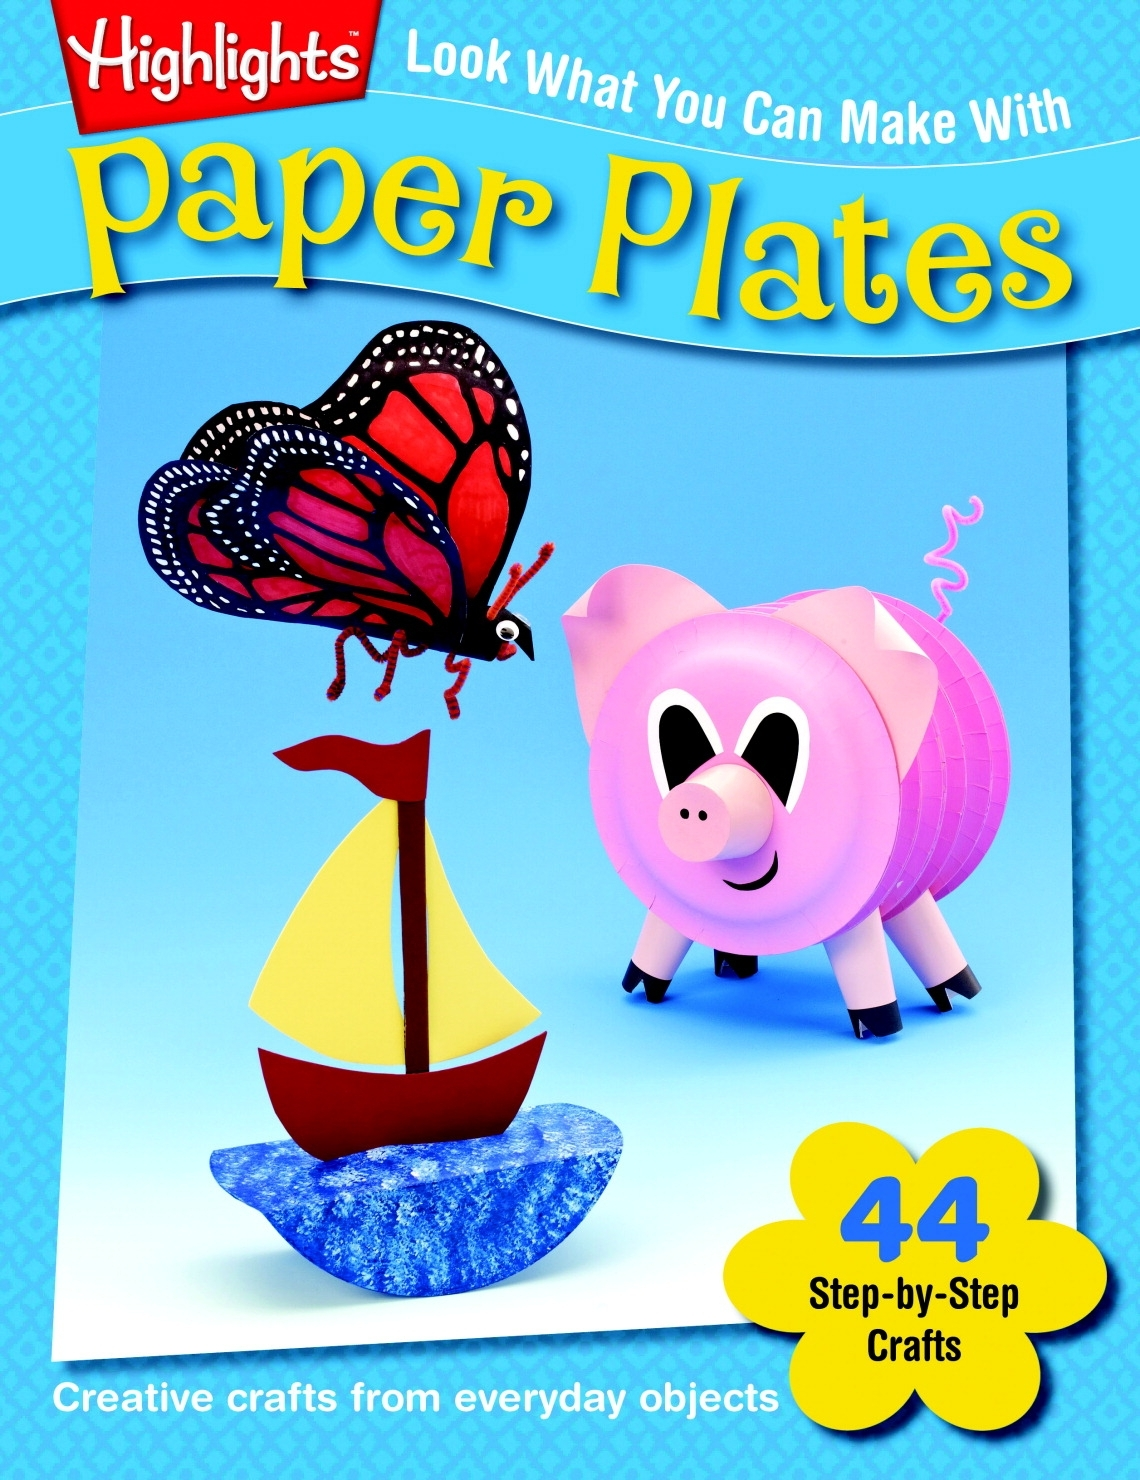 Learning: Classroom Character Development & Education Activity Books & Learning Books - 1498002 - Highlights Look What You Can Make With Paper Plates; 48 Pp. 1498002